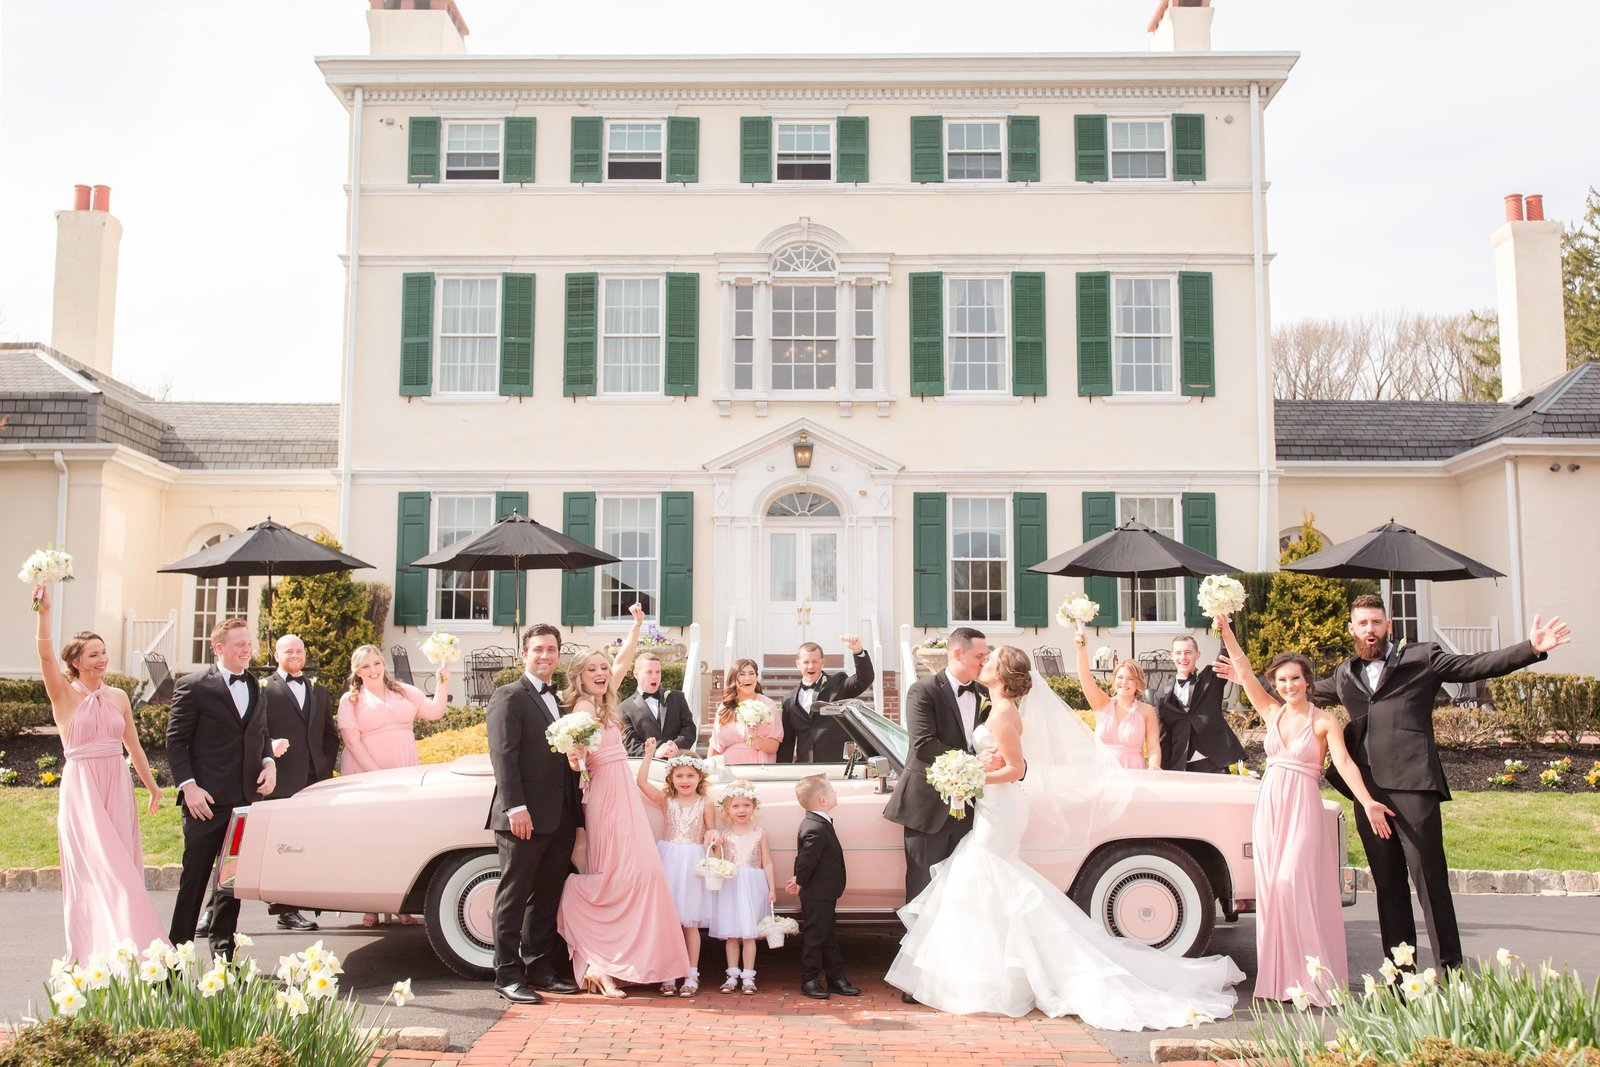 Bridal party photo at Pen Ryn Mansion